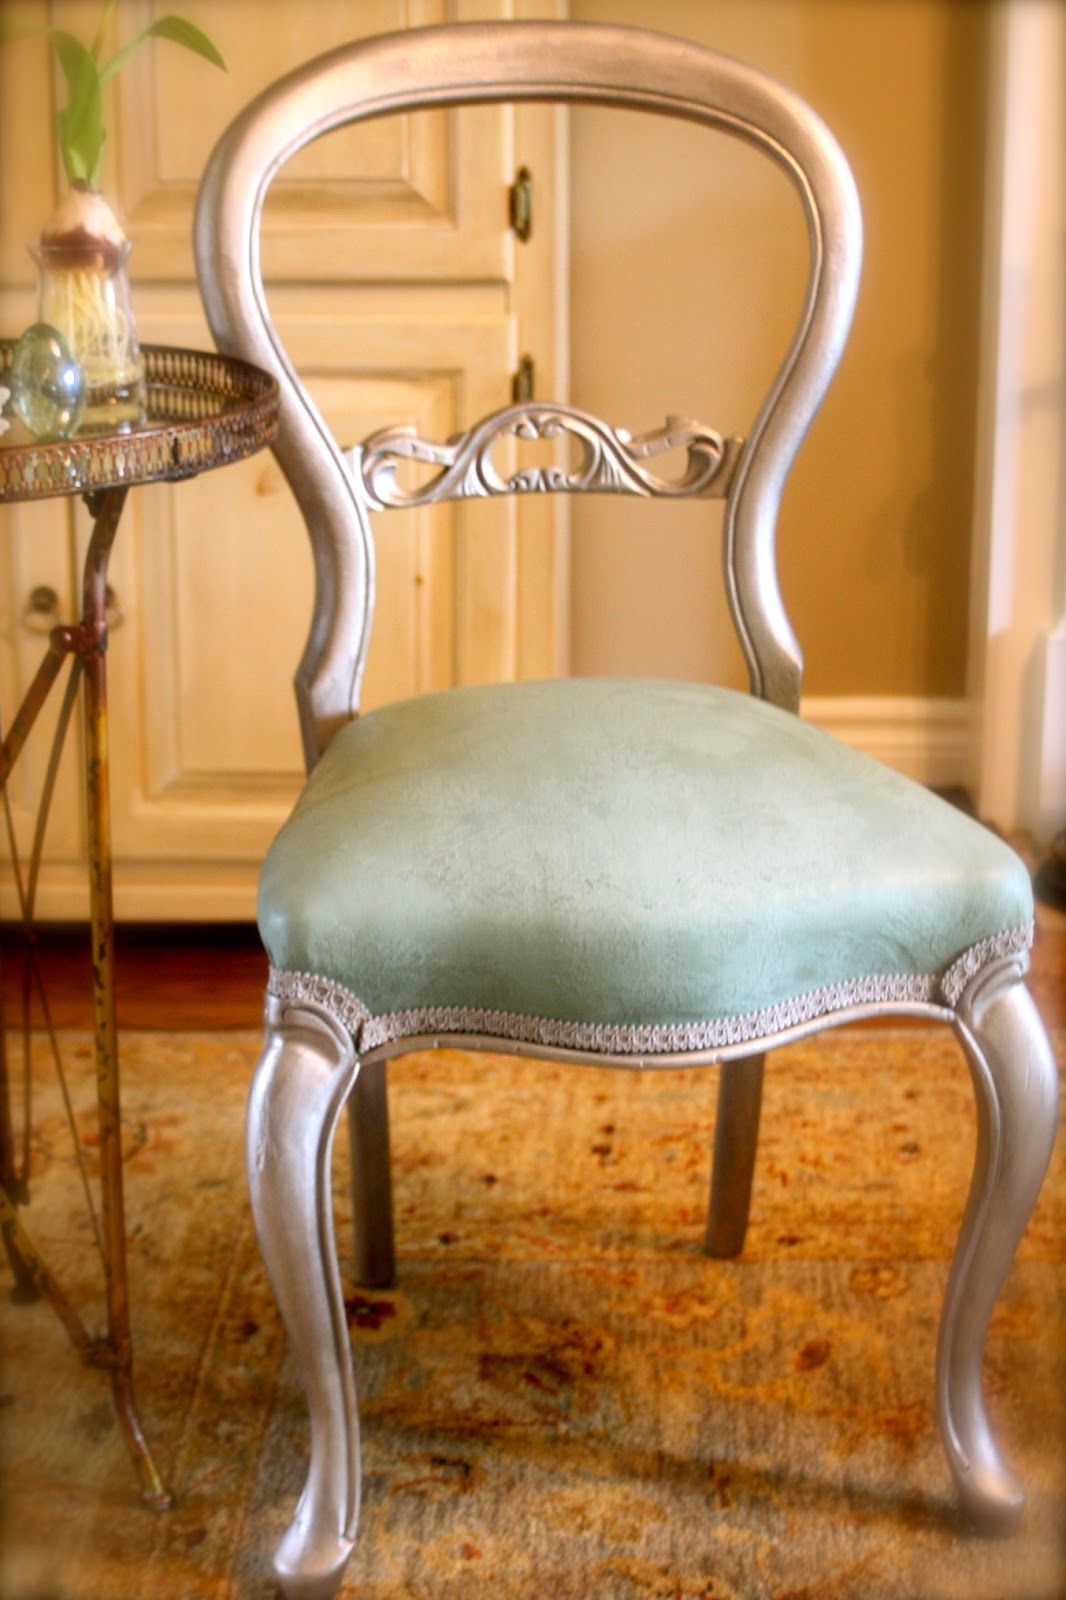 Annie sloan chalk painted fabric chairs by bella tucker decorative - Duck Egg Blue Chalk Paint Decorative Paint By Annie Sloan On Fabric